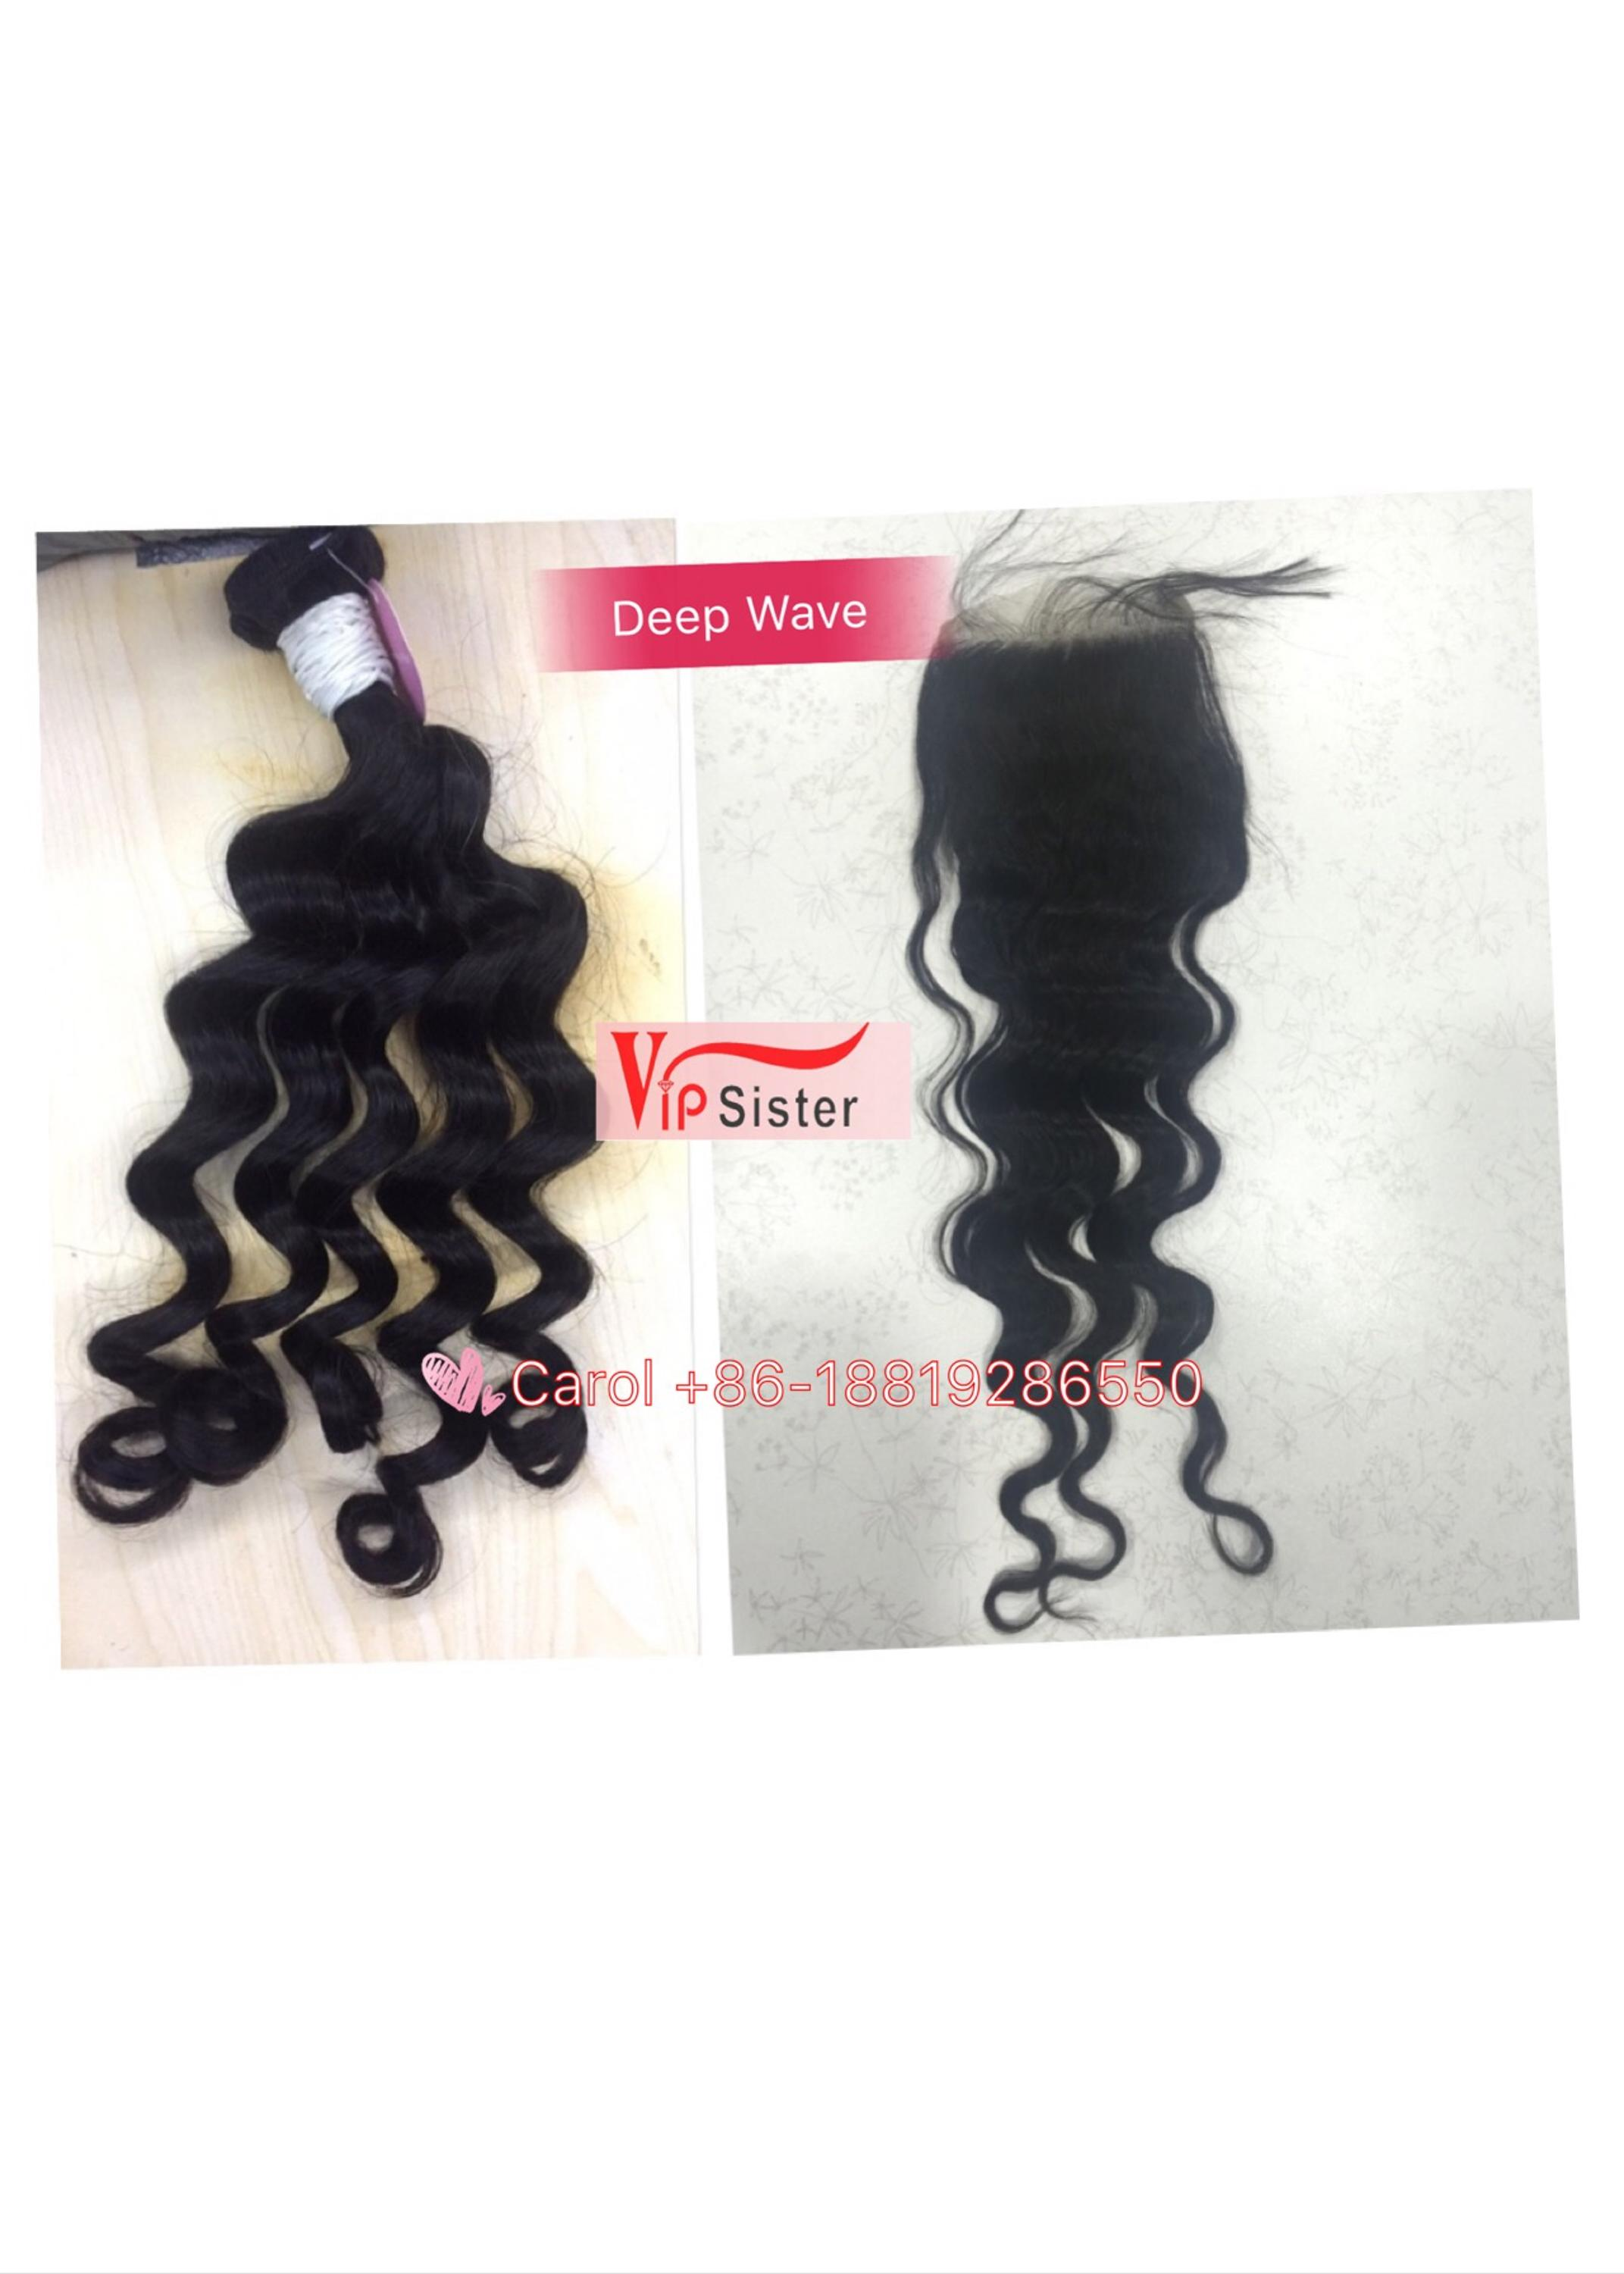 Vipsister Hair italian curly raw hair lace closure